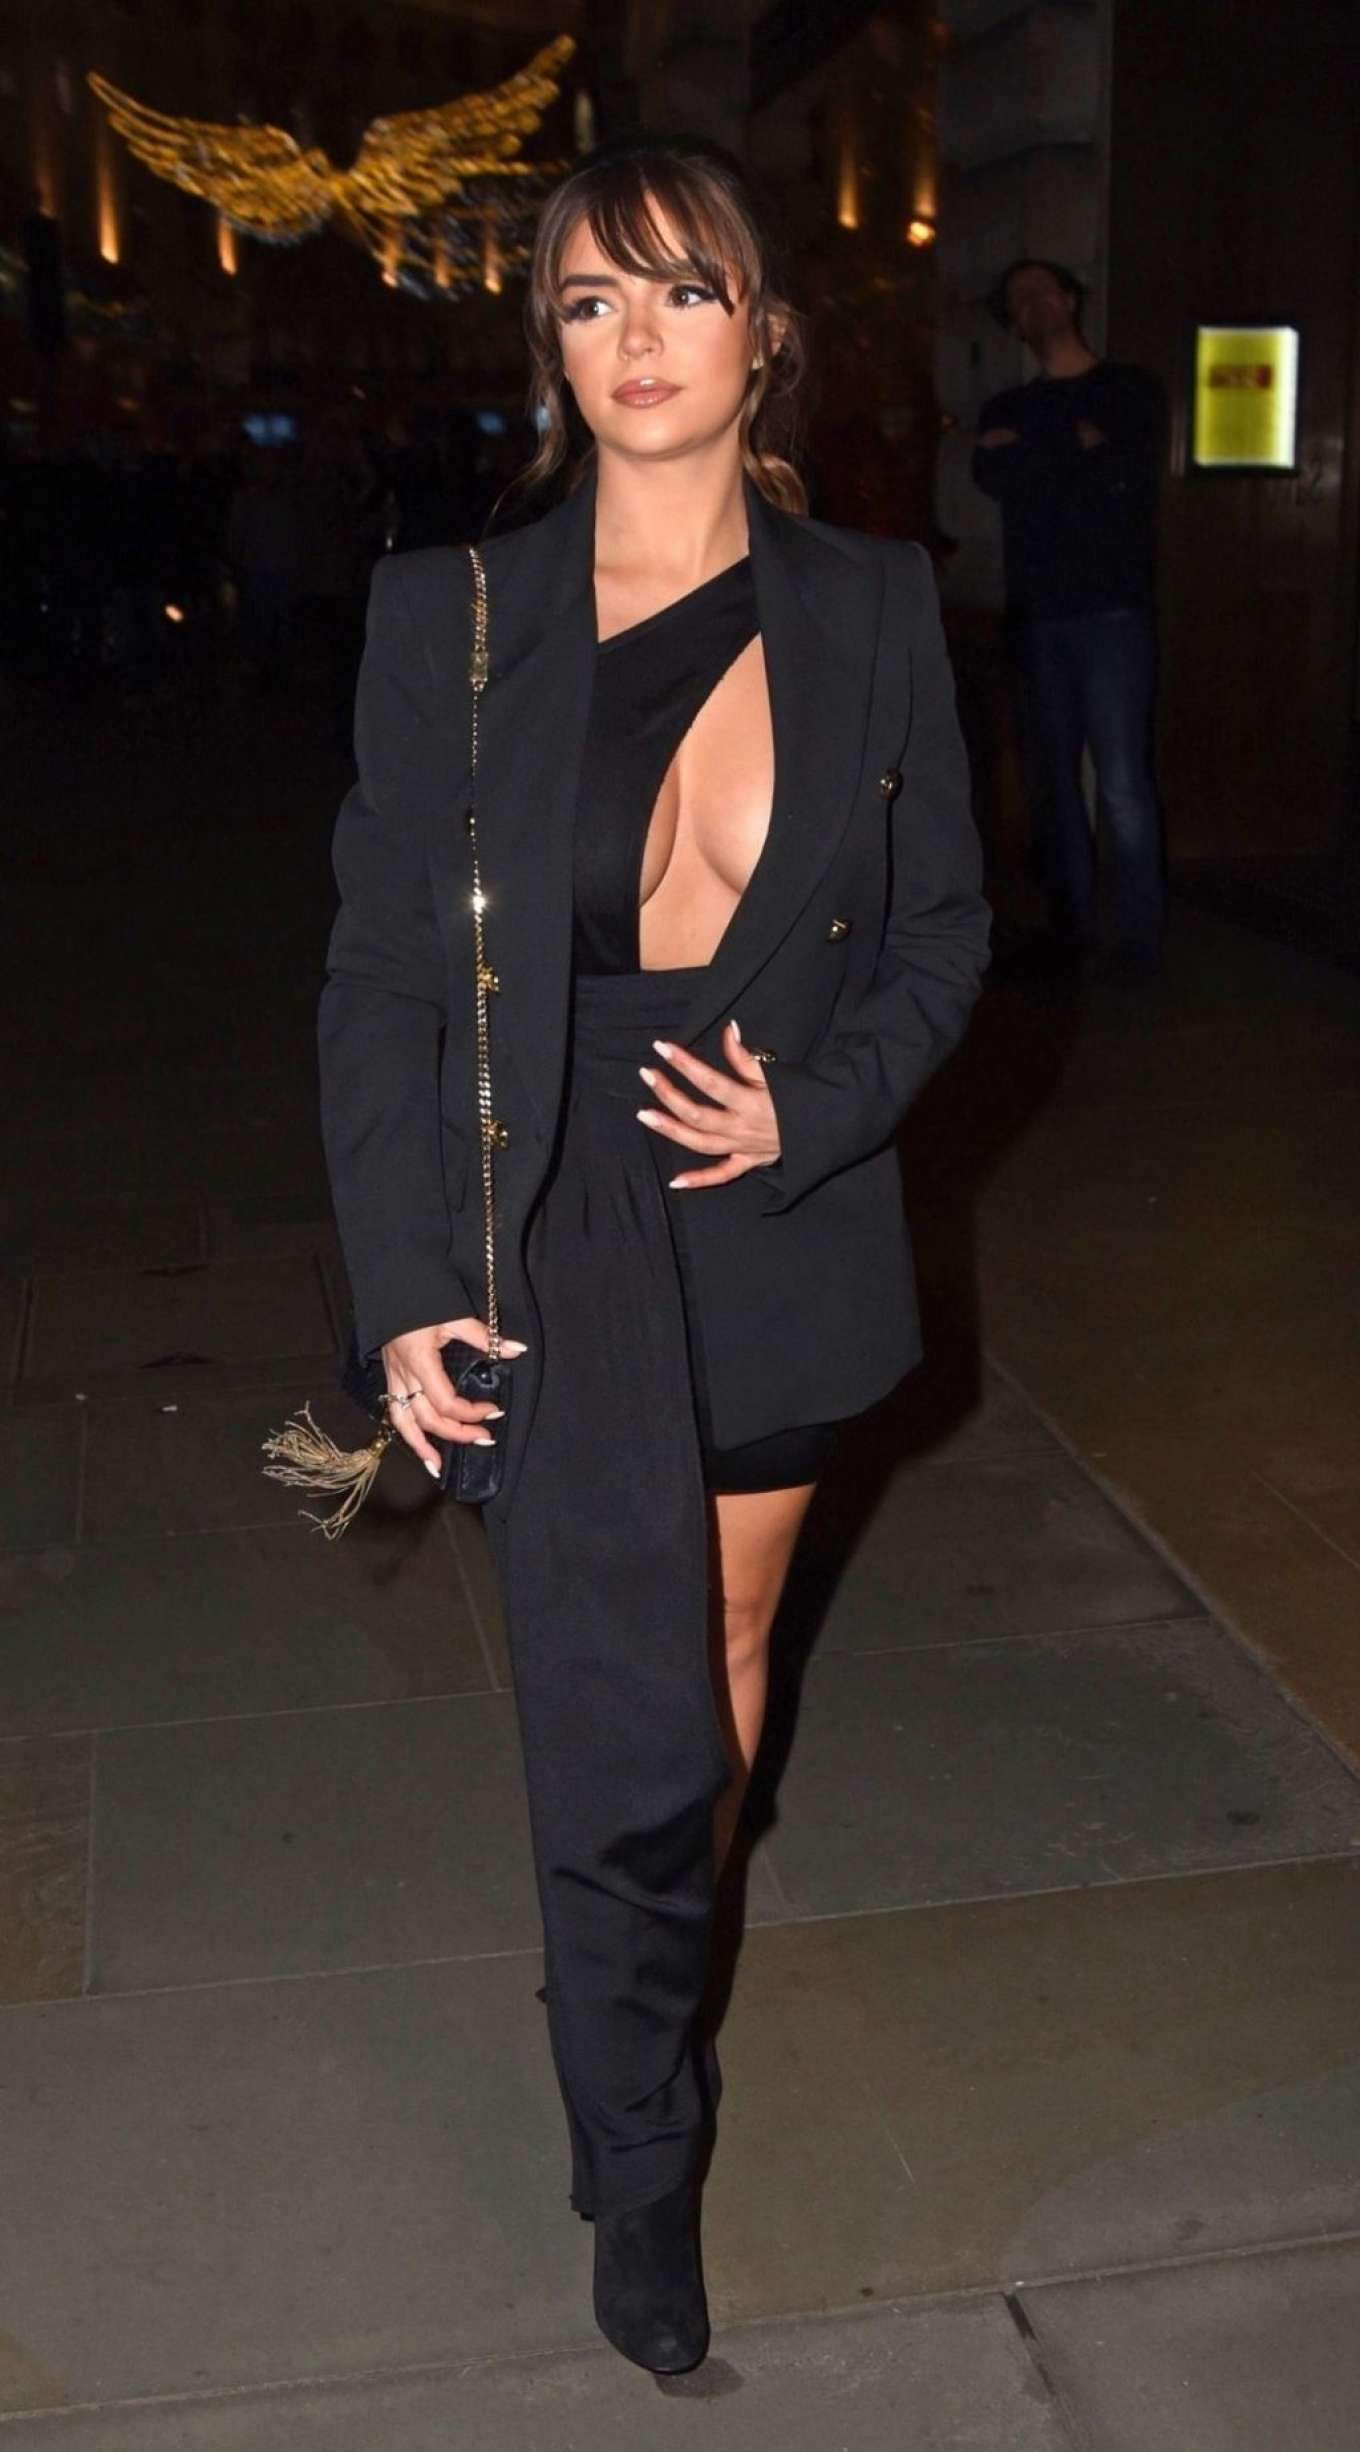 Demi Rose Mawby 2019 : Demi Rose Mawby was pictured while arriving at Cafe Royal in London-26